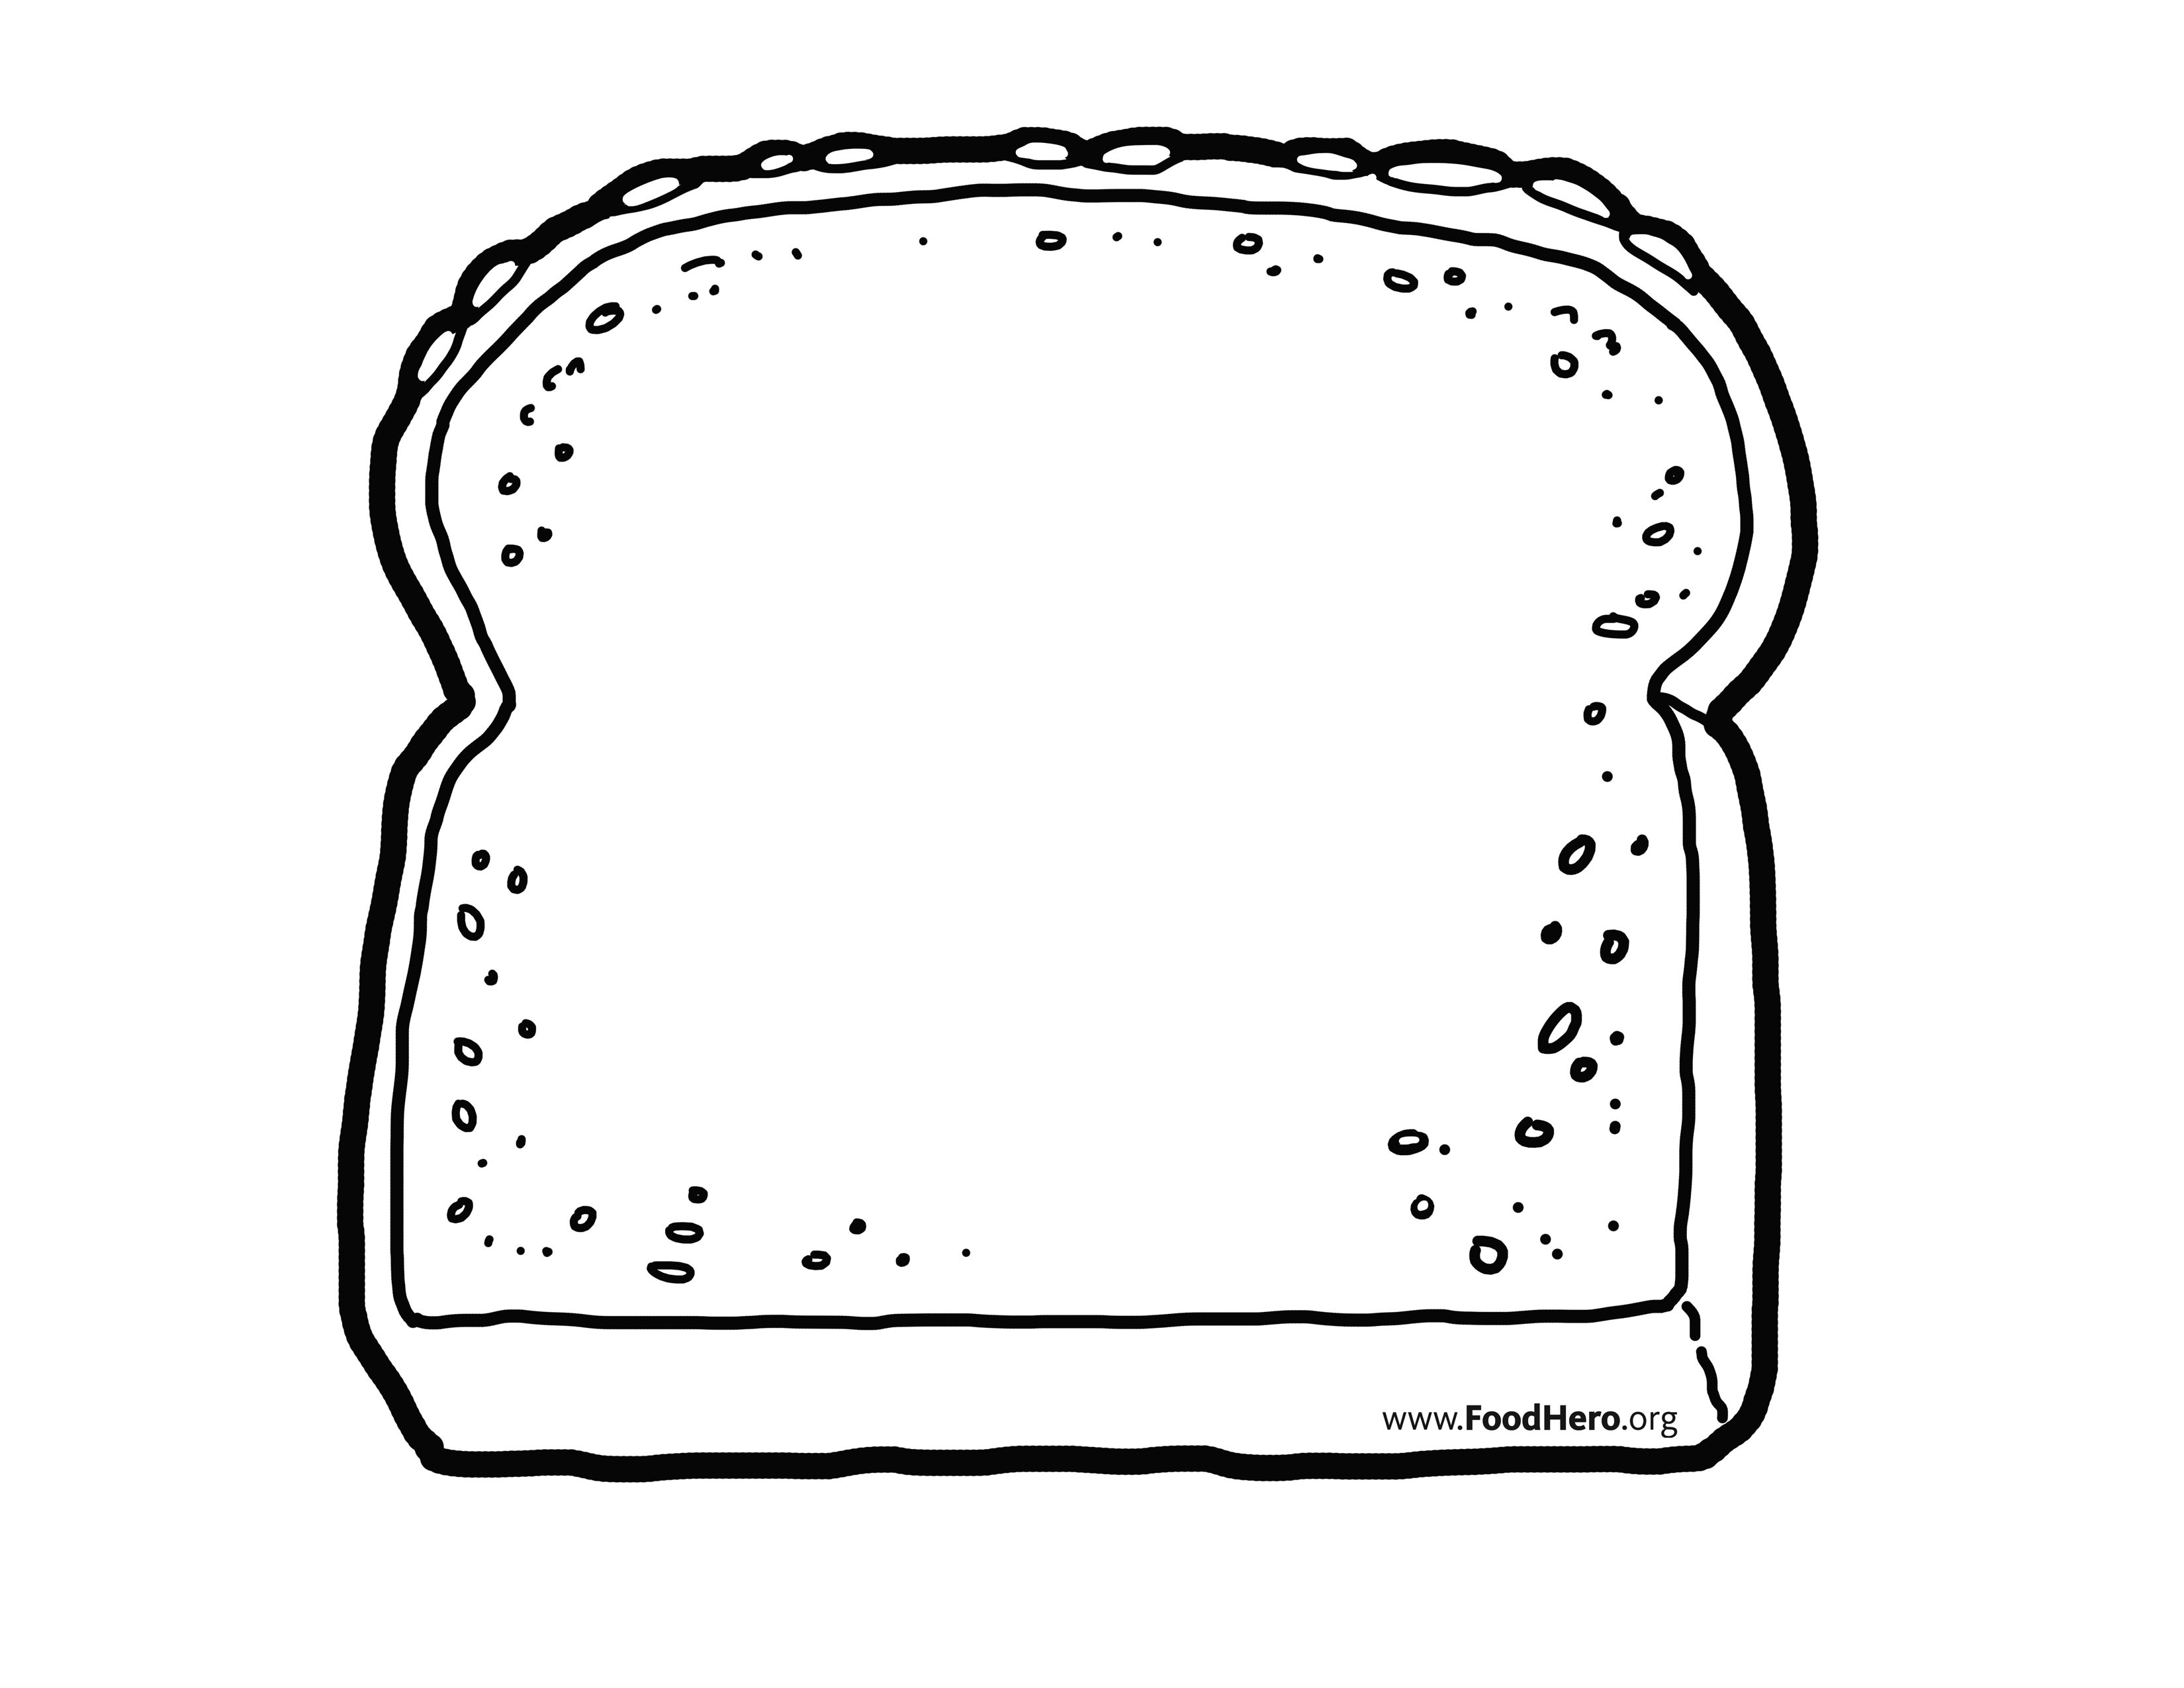 Wheat outline clipart picture free library Whole Wheat Grain outline. Find at foodhero.org ... picture free library